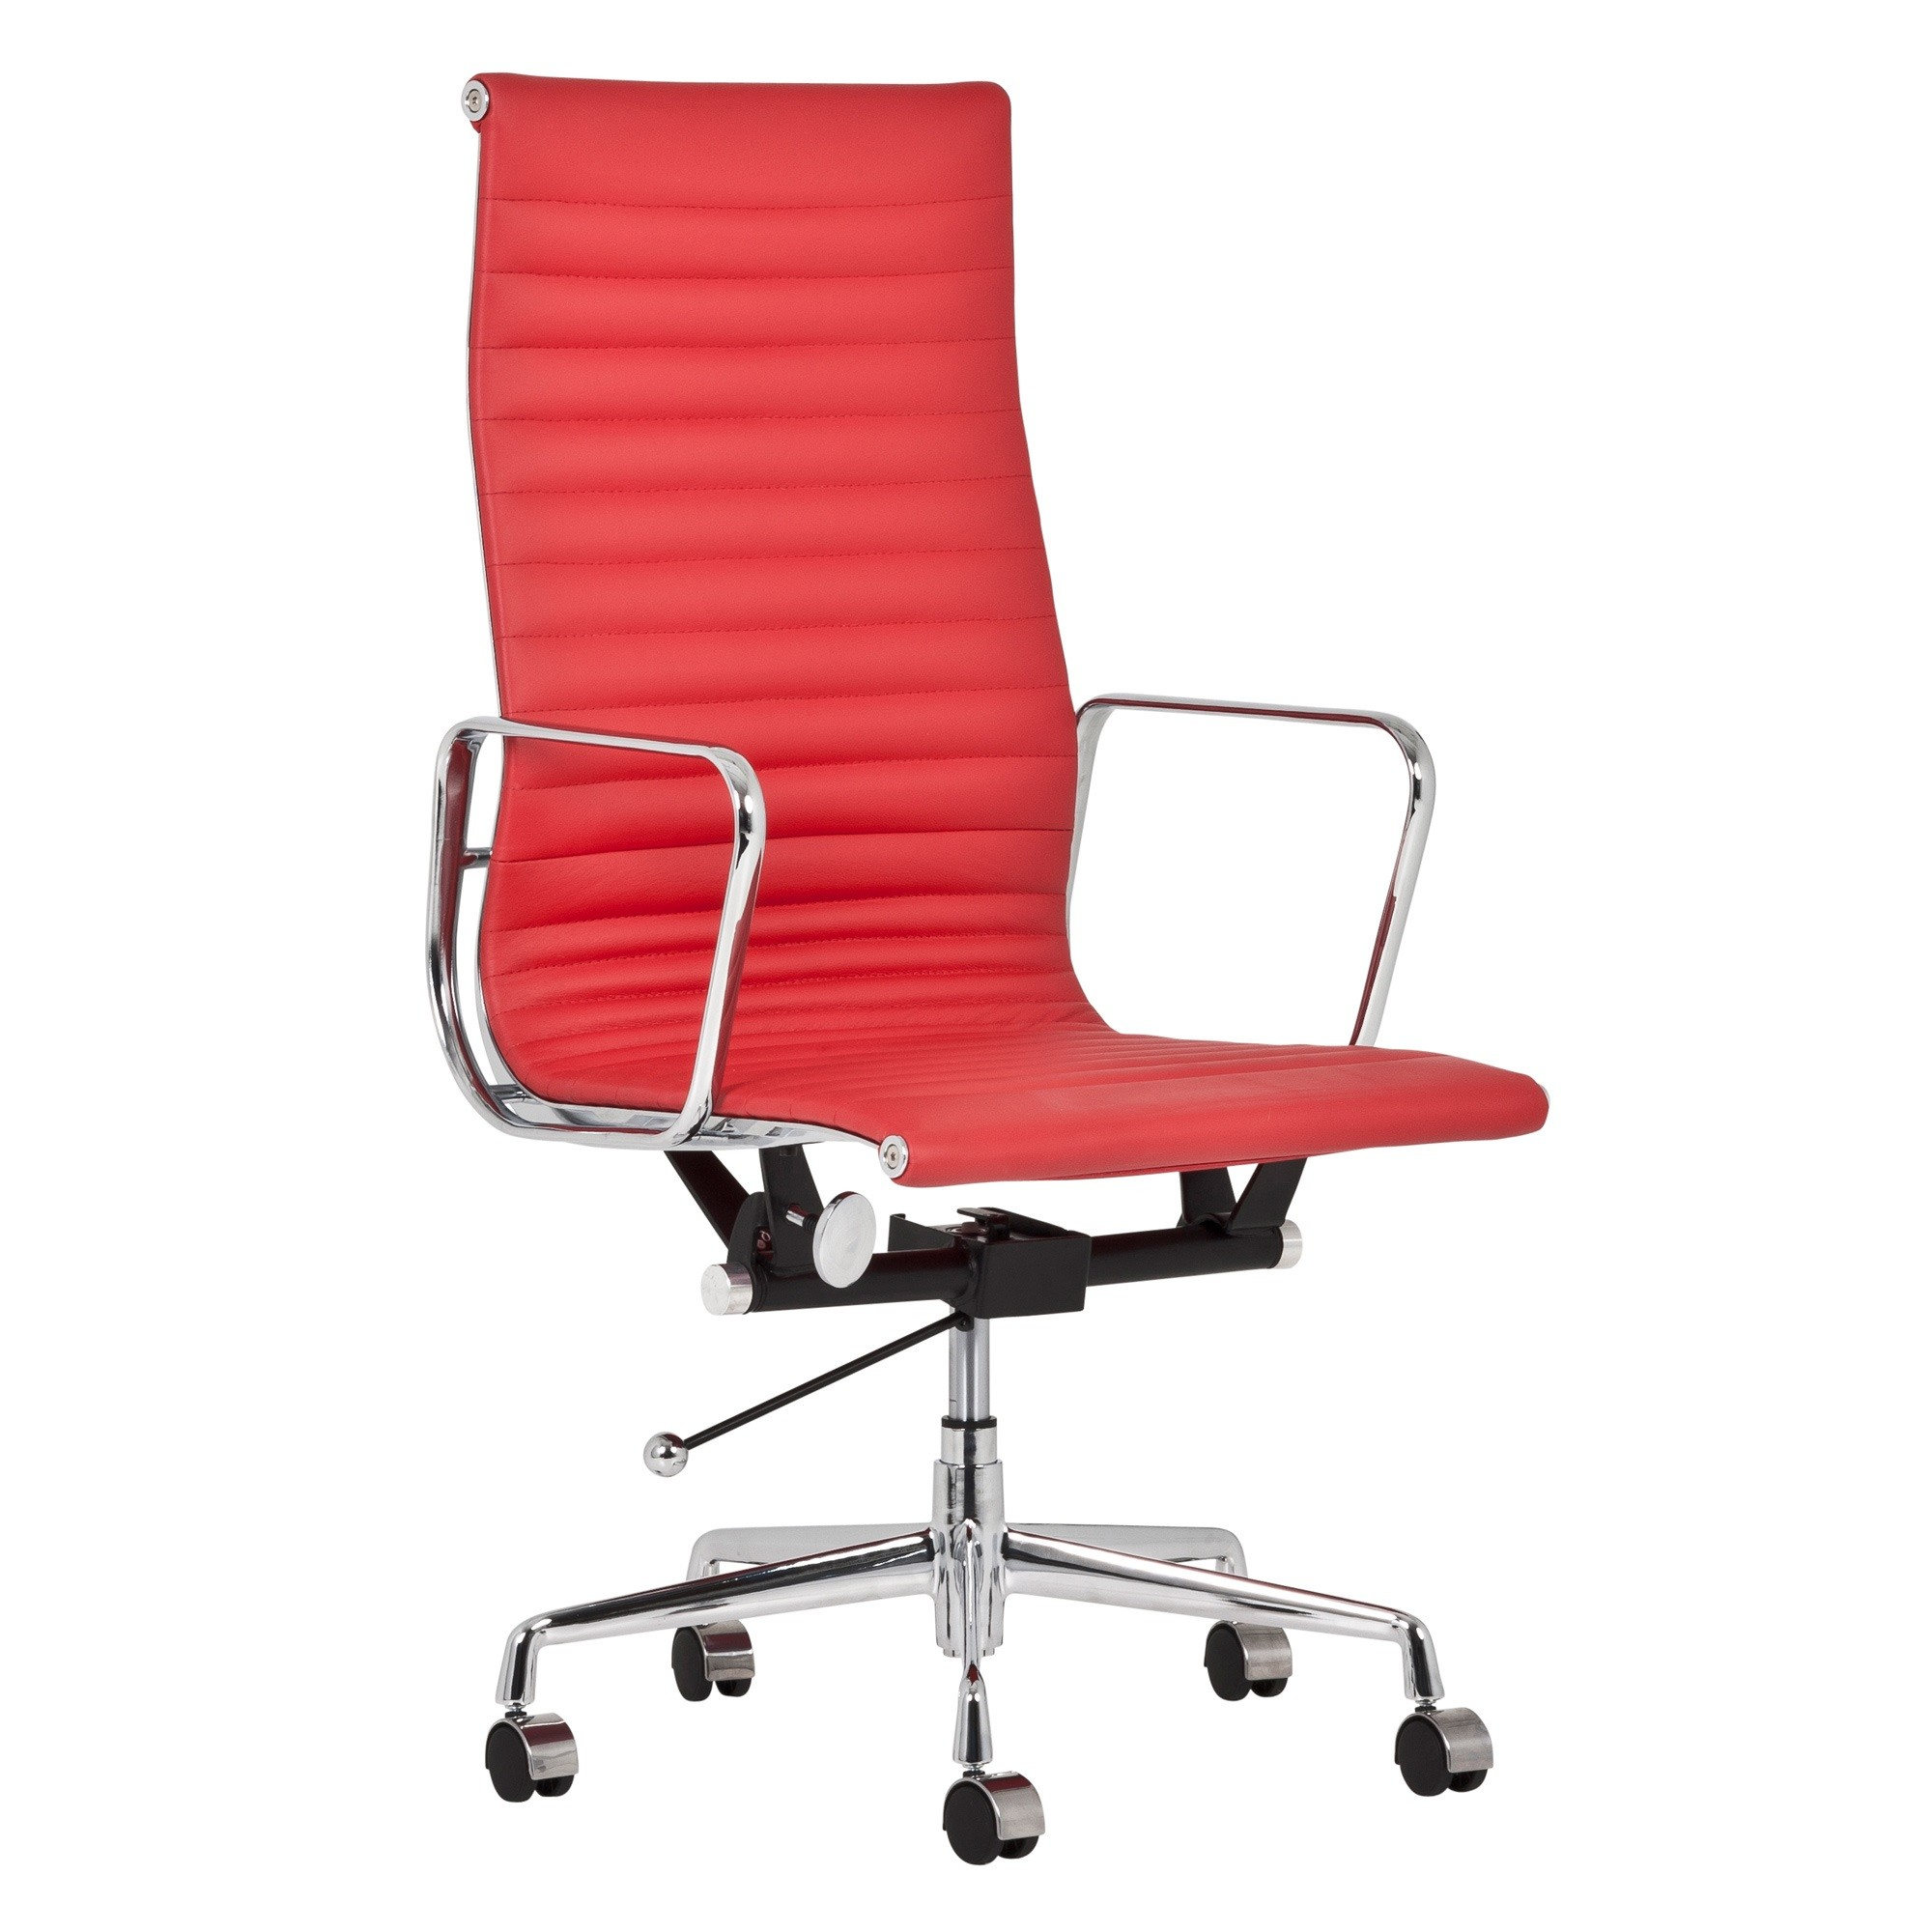 new eames replica high back management office chair ebay. Black Bedroom Furniture Sets. Home Design Ideas